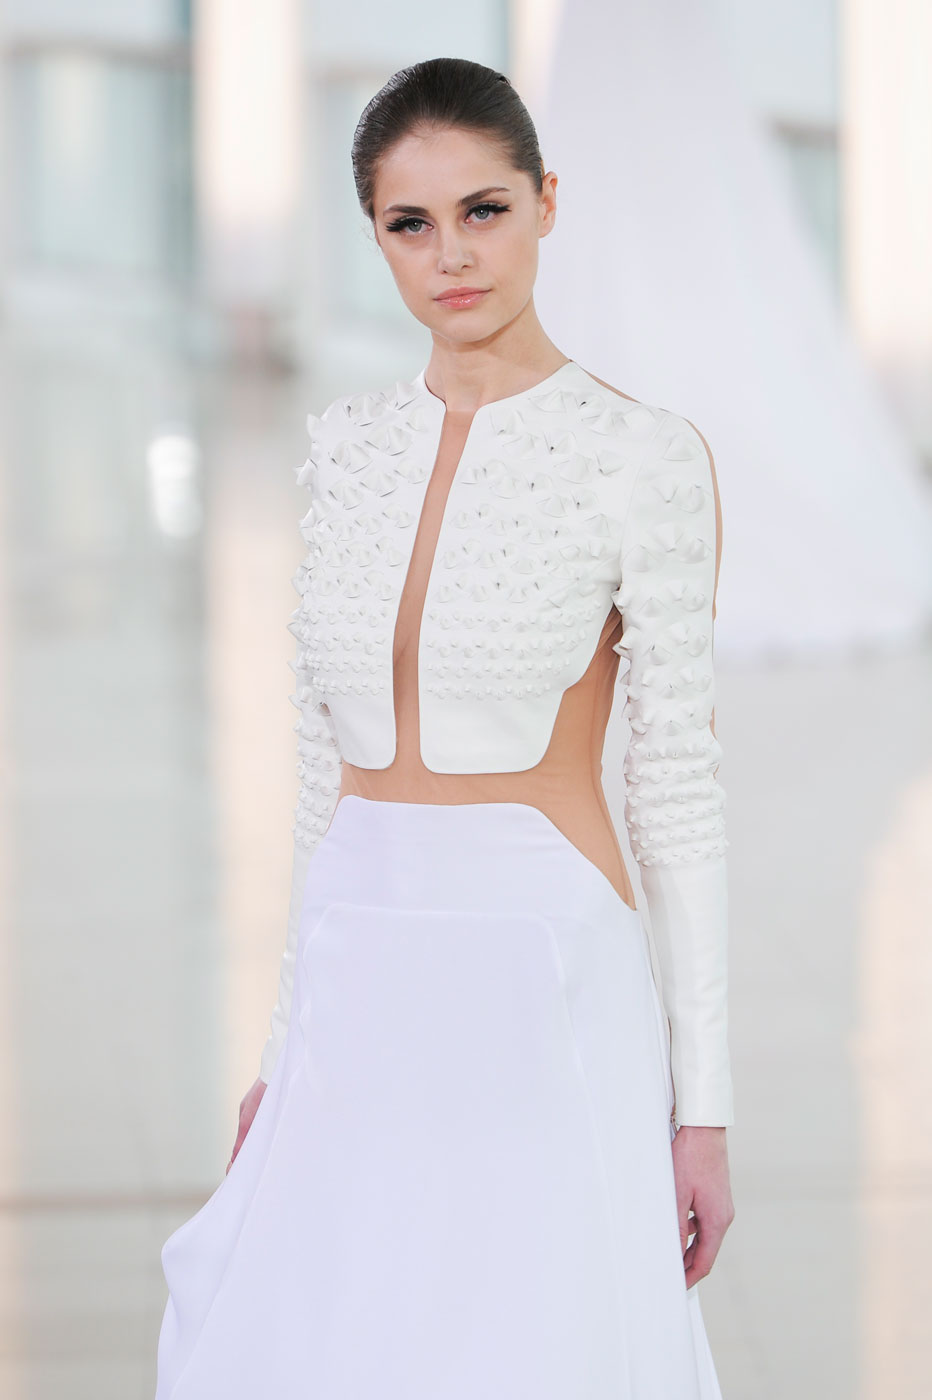 stephane-rolland-fashion-runway-show-haute-couture-paris-spring-2015-the-impression-20